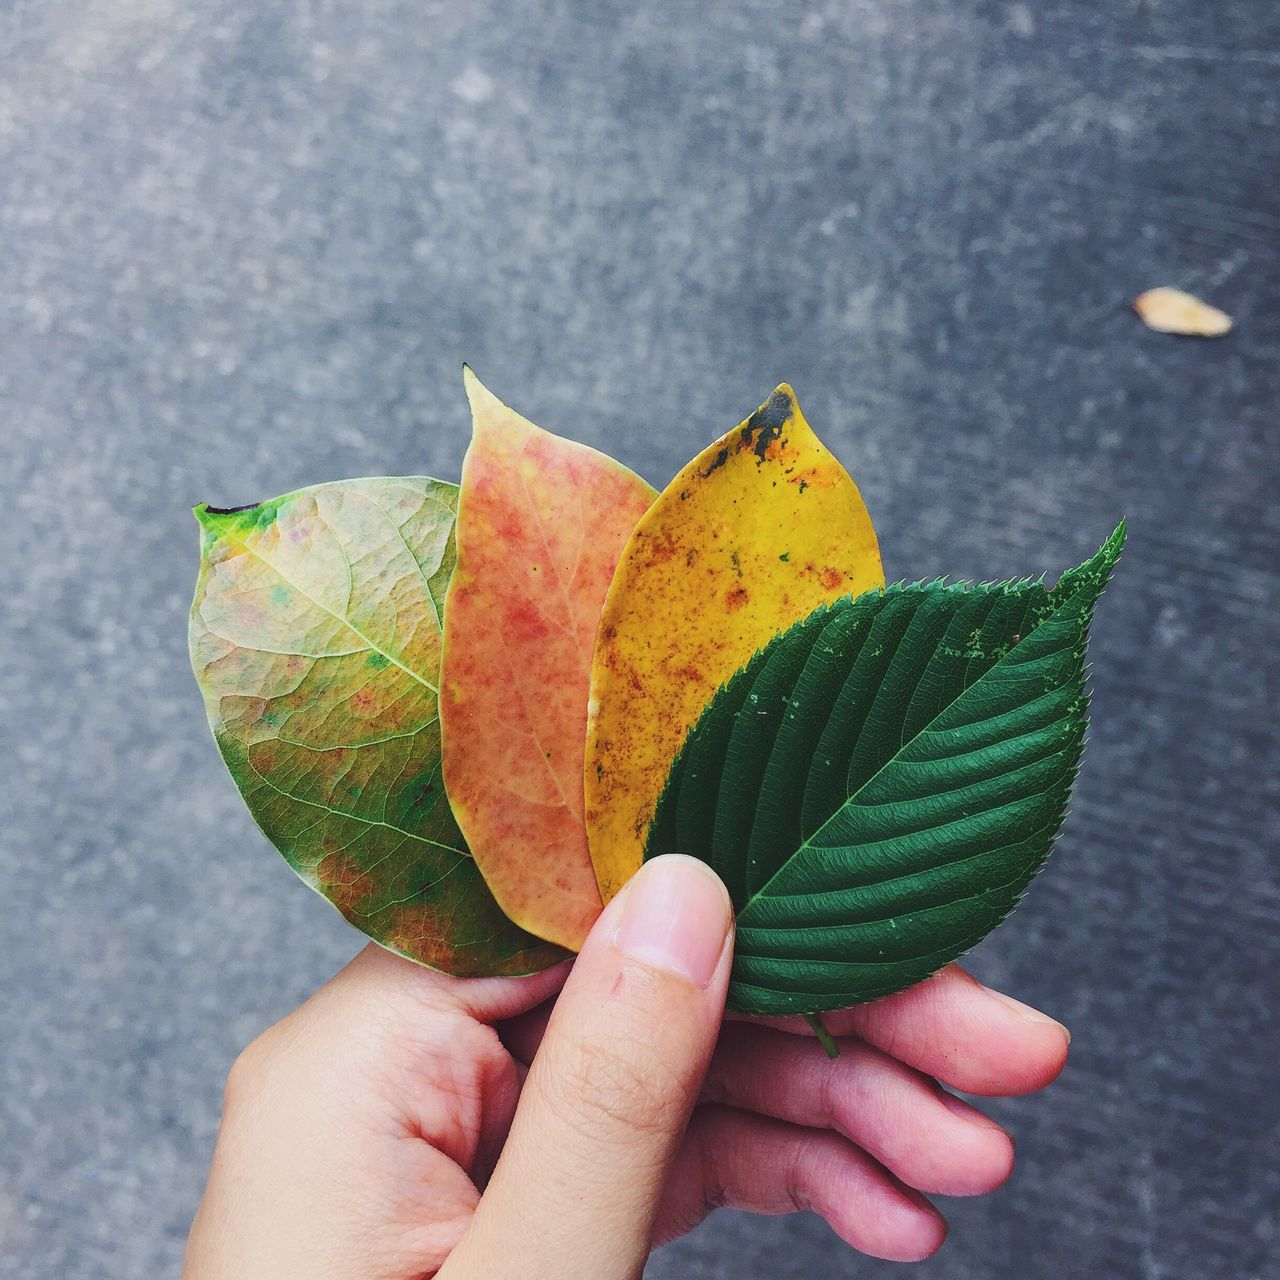 four color leaves. The Great Outdoors - 2016 EyeEm Awards The Essence Of Summer EyeEm Gallery Capture The Moment Eye4photography  Beauty In Nature From My Point Of View EyeEm Nature Lover EyeEmbestshots Taking Photos Enjoying Life Hello World Summertime Summer Beauty In Ordinary Things No People Leaves_collection Yellow Green